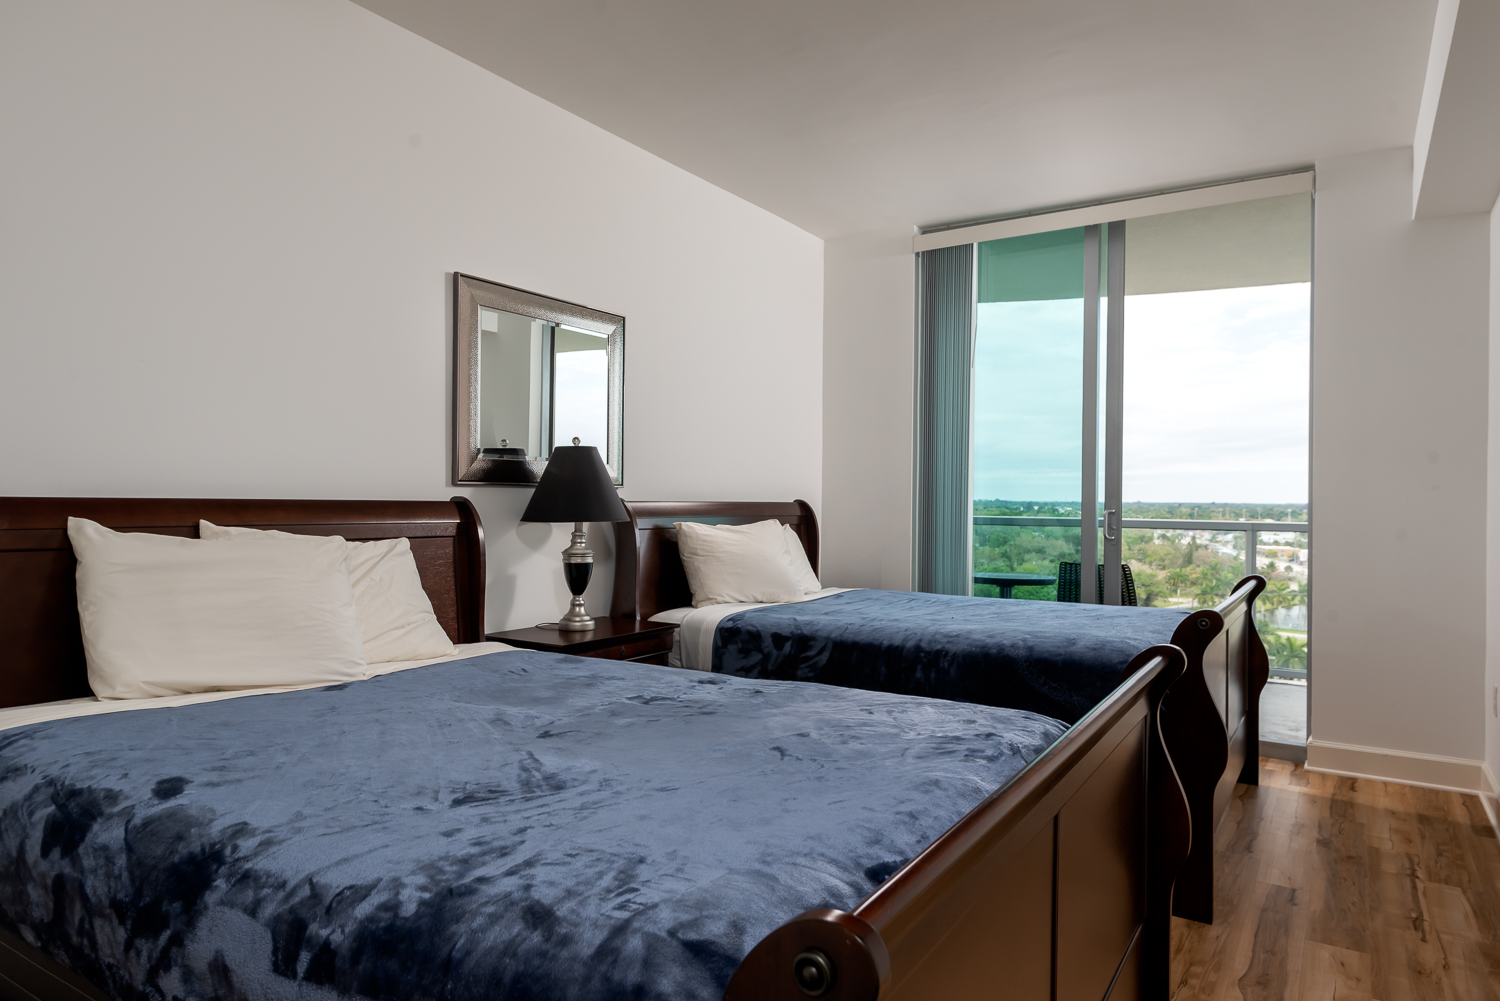 Fort-myers-fl-river-condo-oasis-second-bedroom